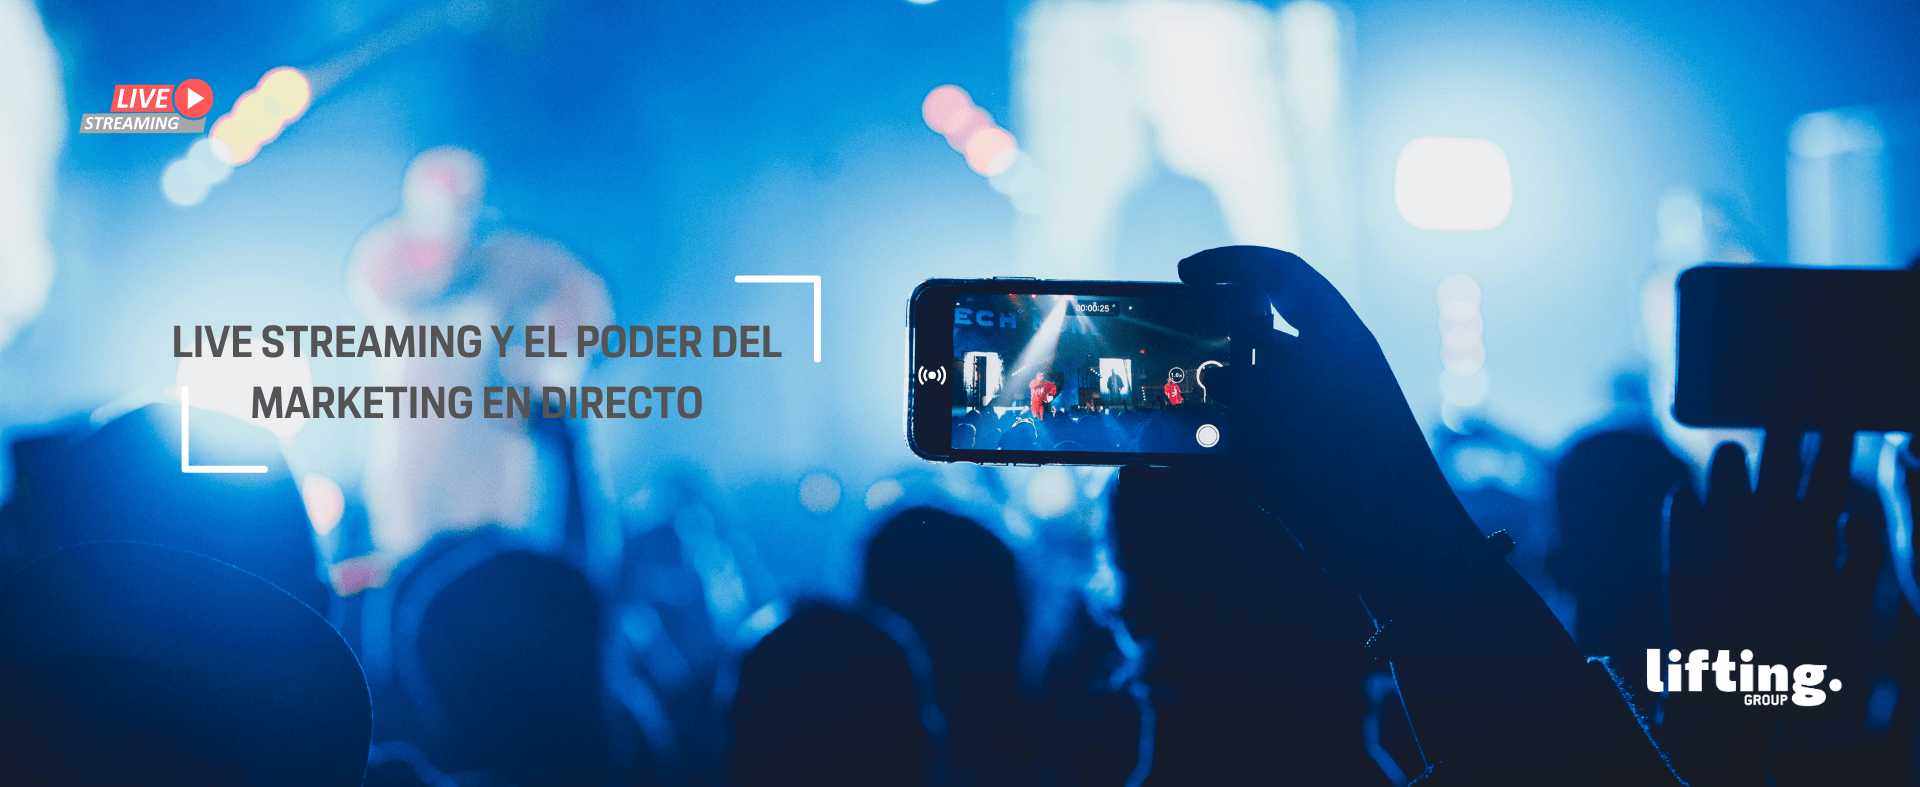 Live Streaming y el poder del marketing digital en directo.